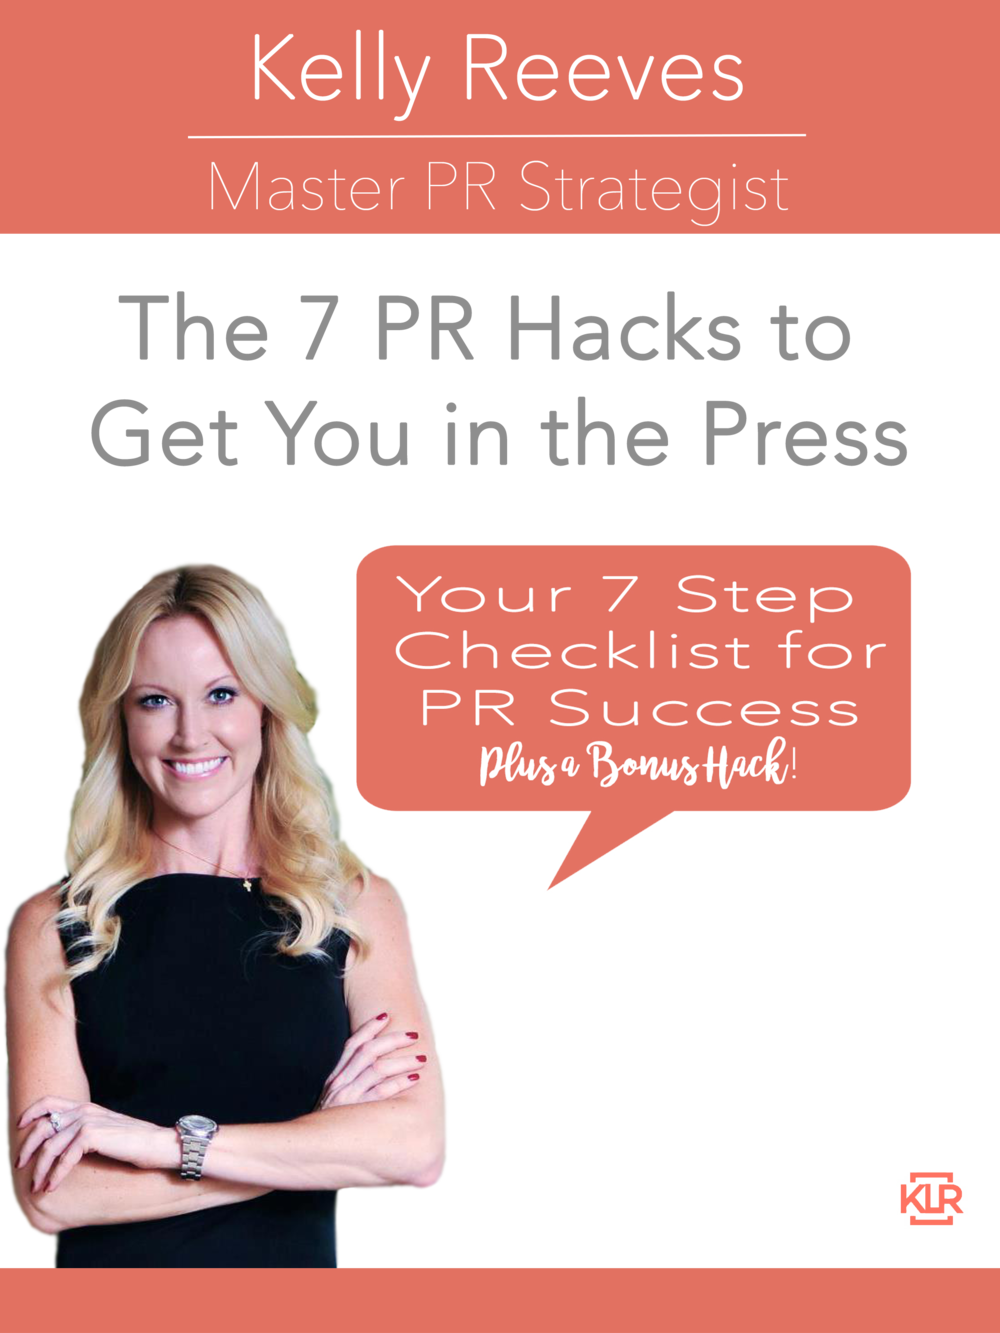 Want my free pr checklist? - Click here to download 'The 7 PR Hacks to Get You in the Press'